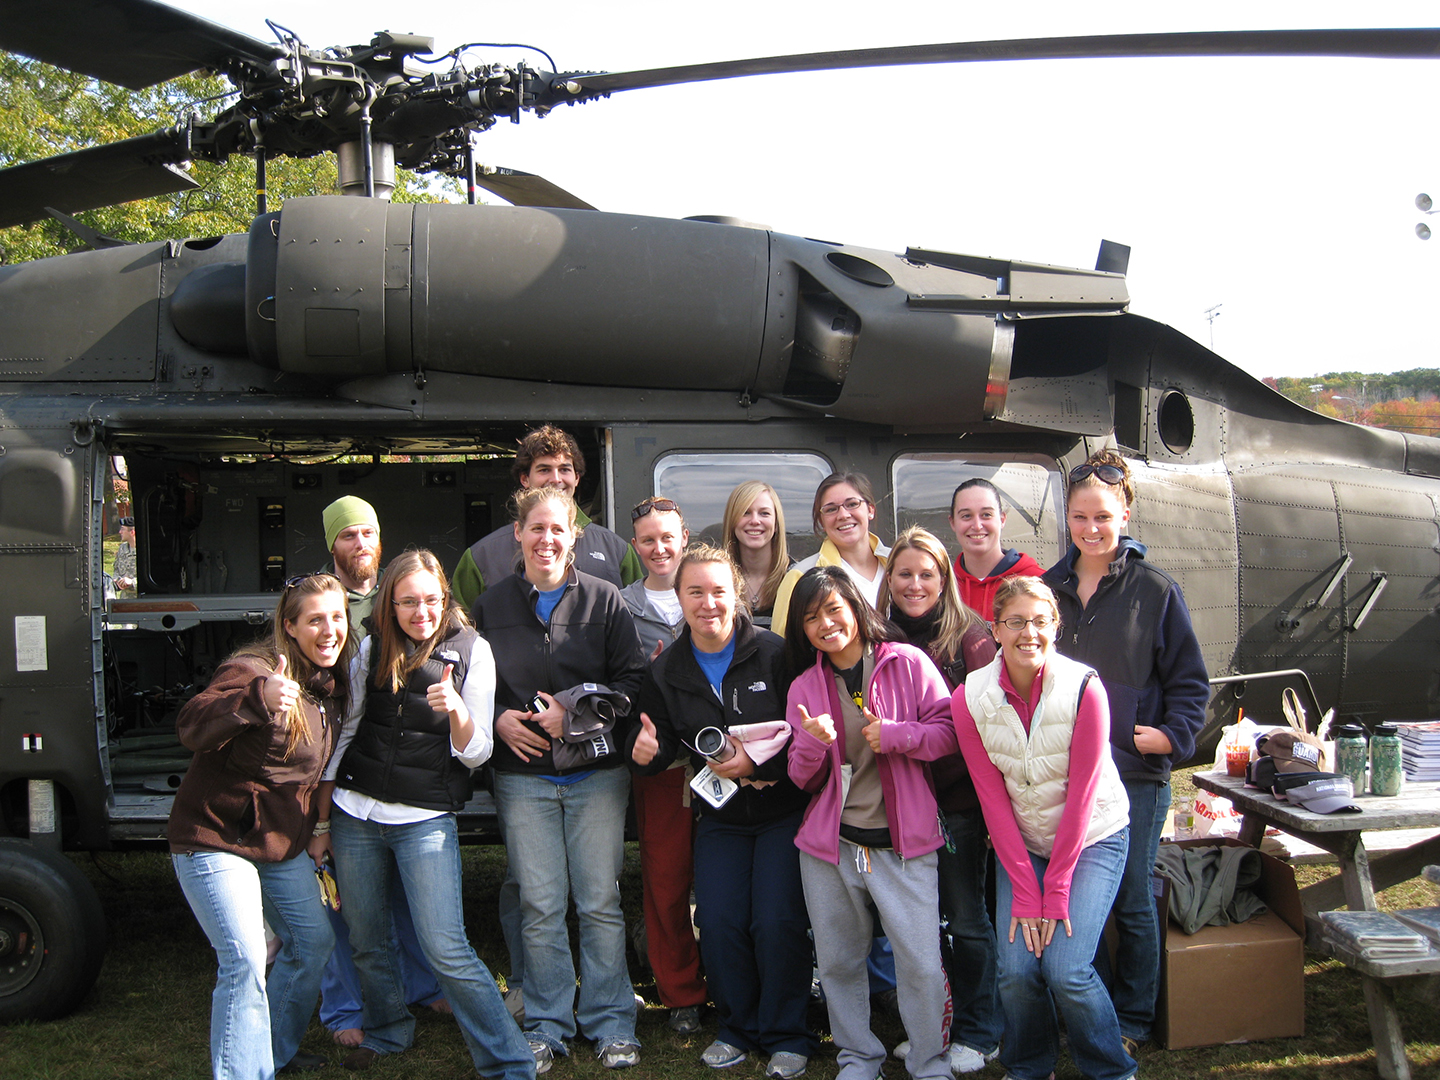 com students pose with a helicoptor